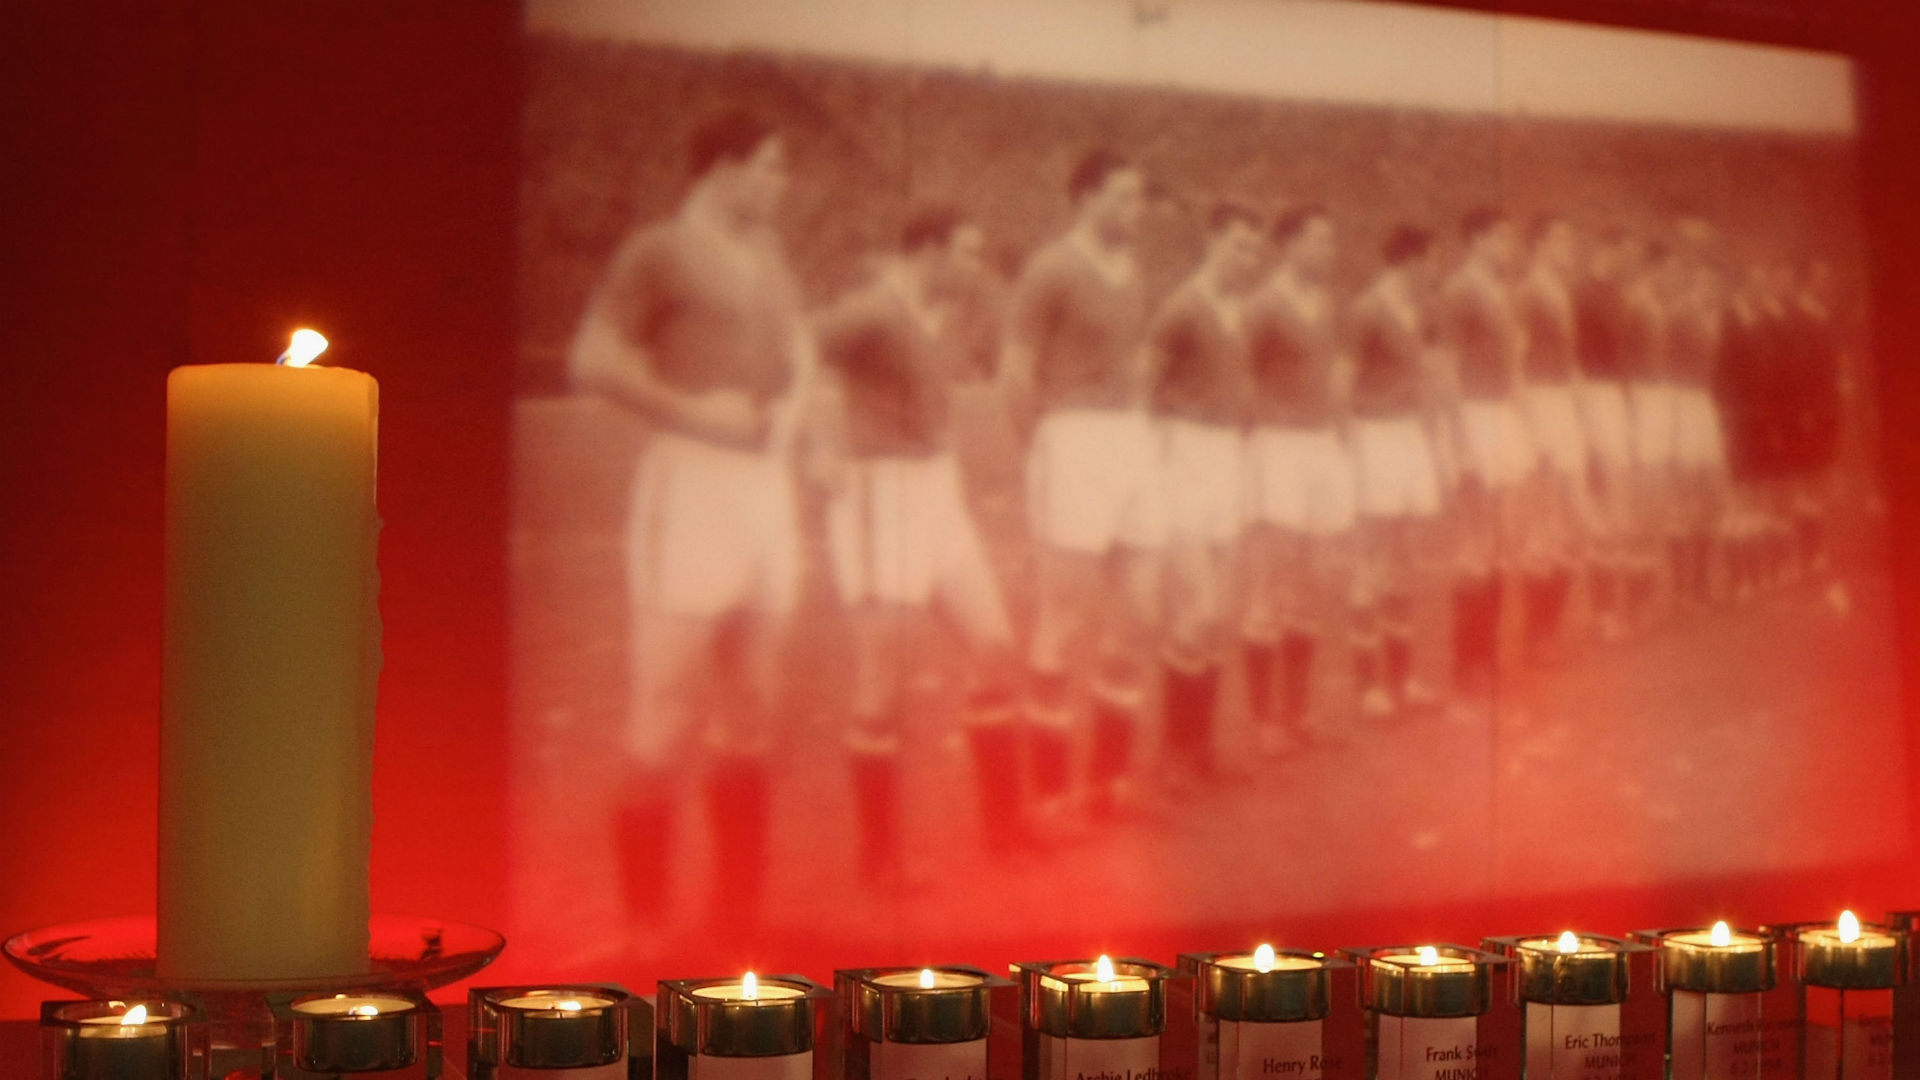 Manchester United Munich air disaster memorial 2008